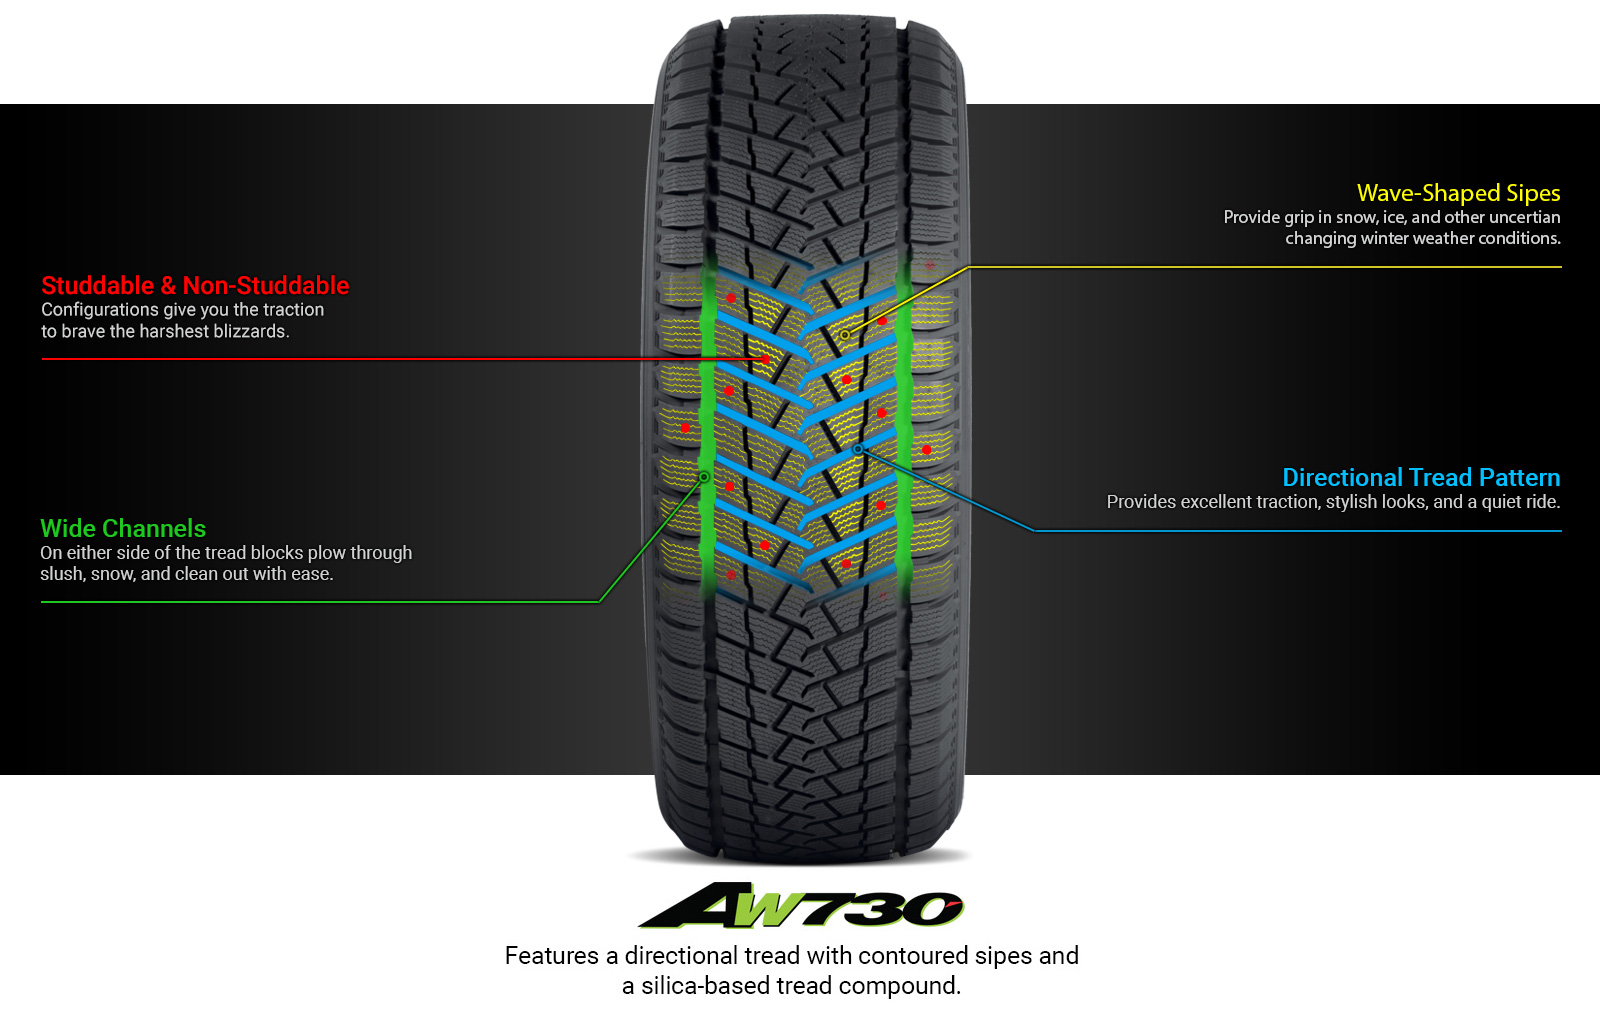 tire image with detailed description